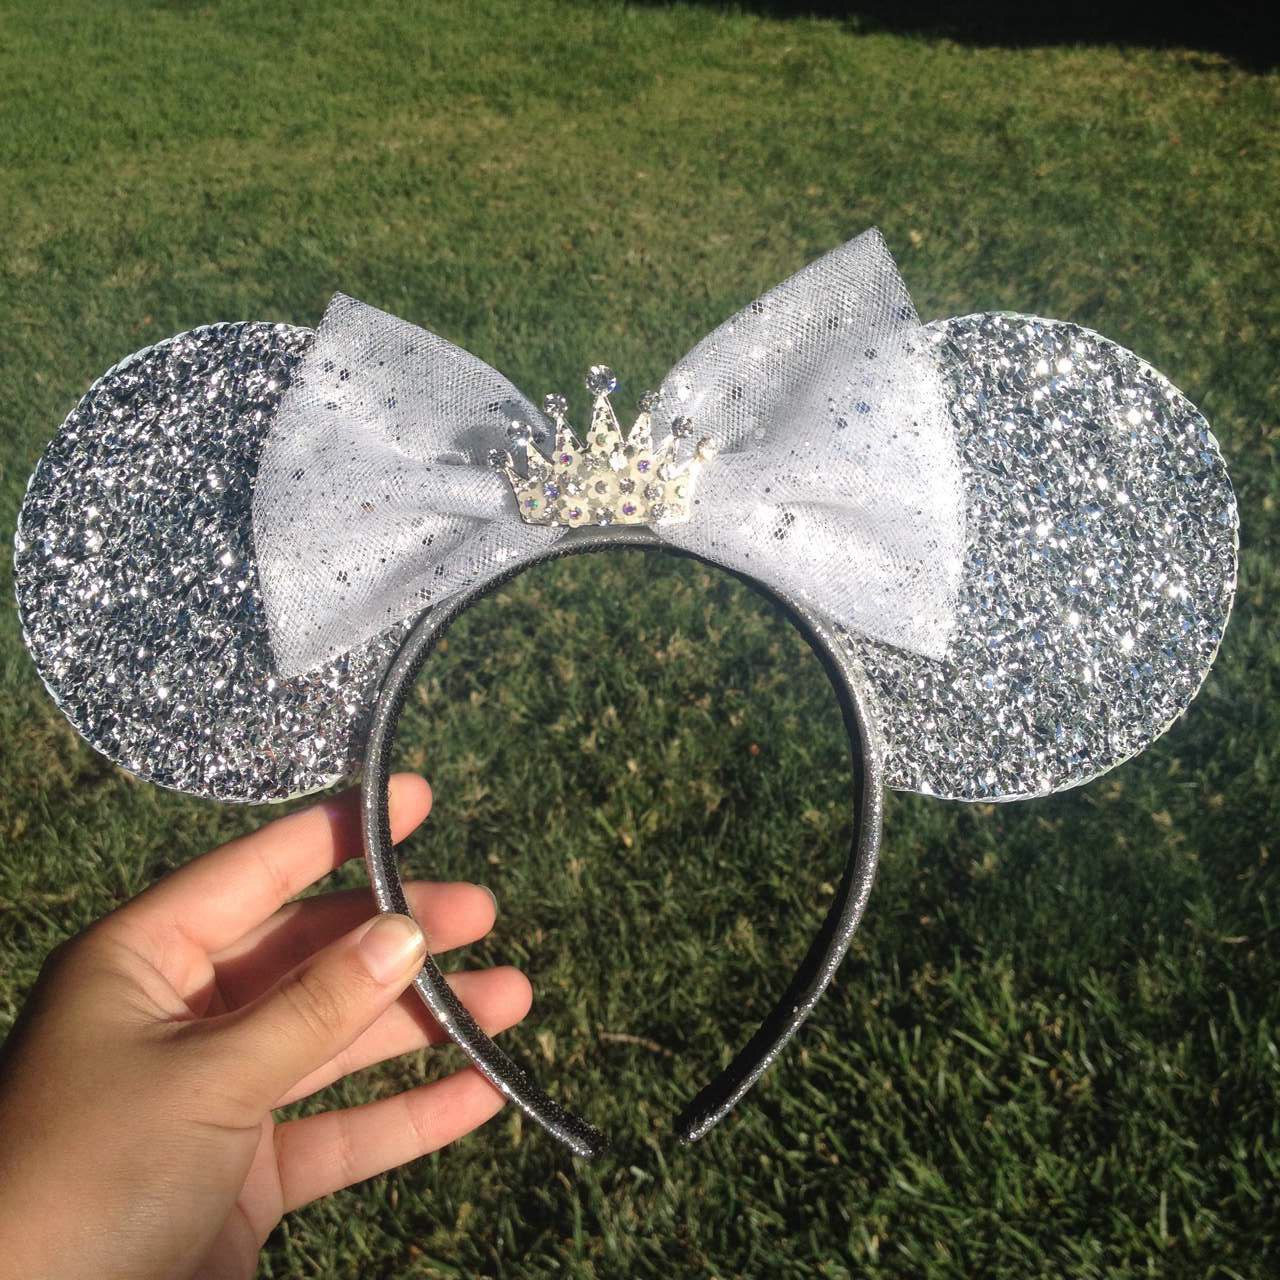 Deluxe Silver Diamond Queen Minnie Mouse Ears with Rhinestone center Crown